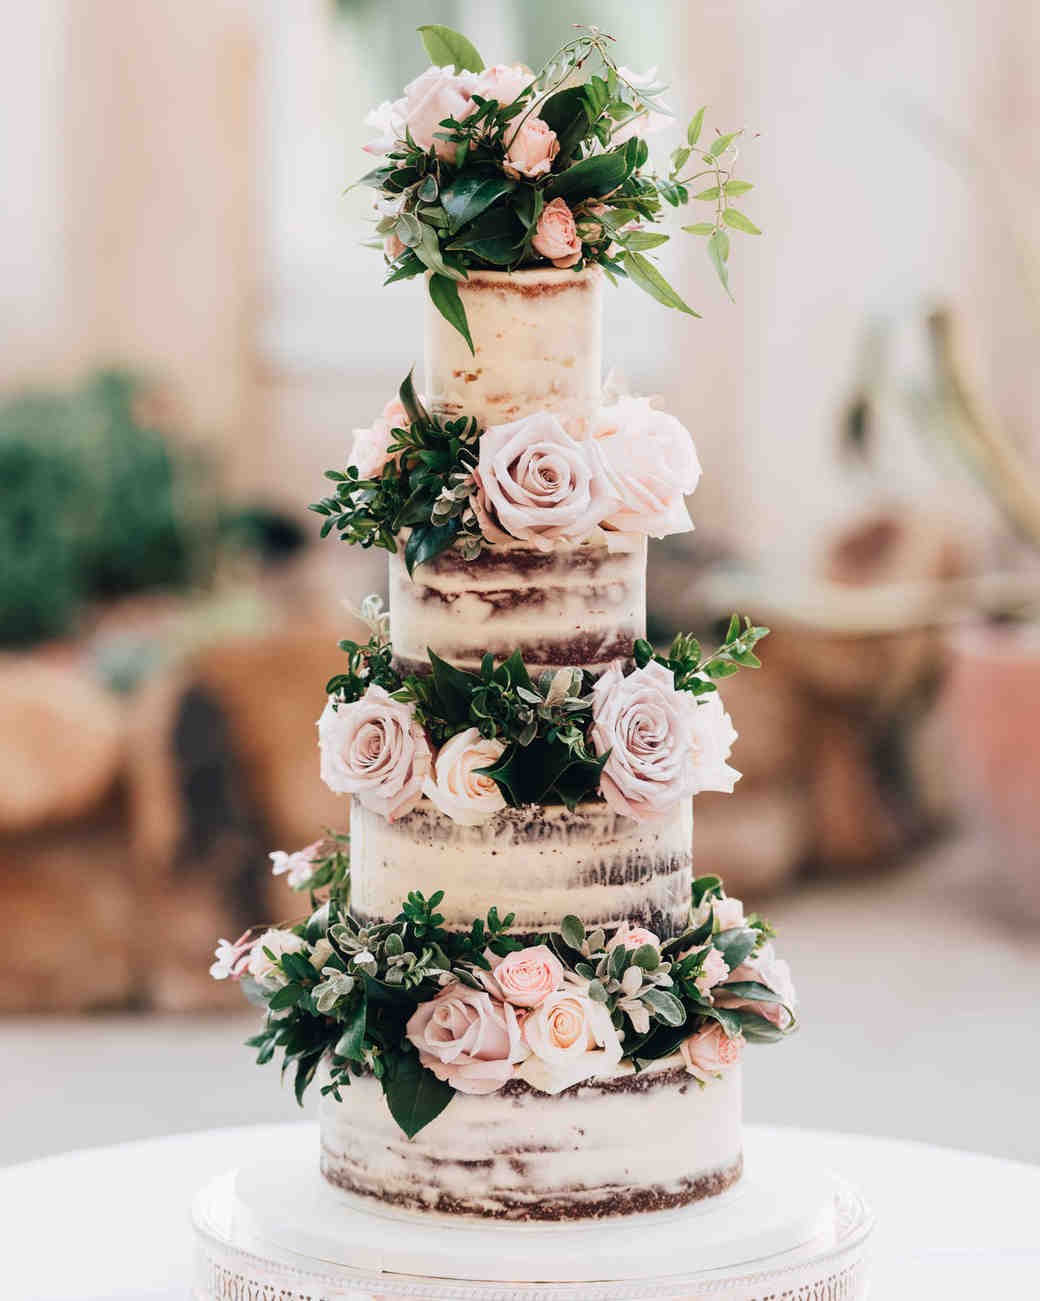 cakes with floral tiers romantic roses semi-naked